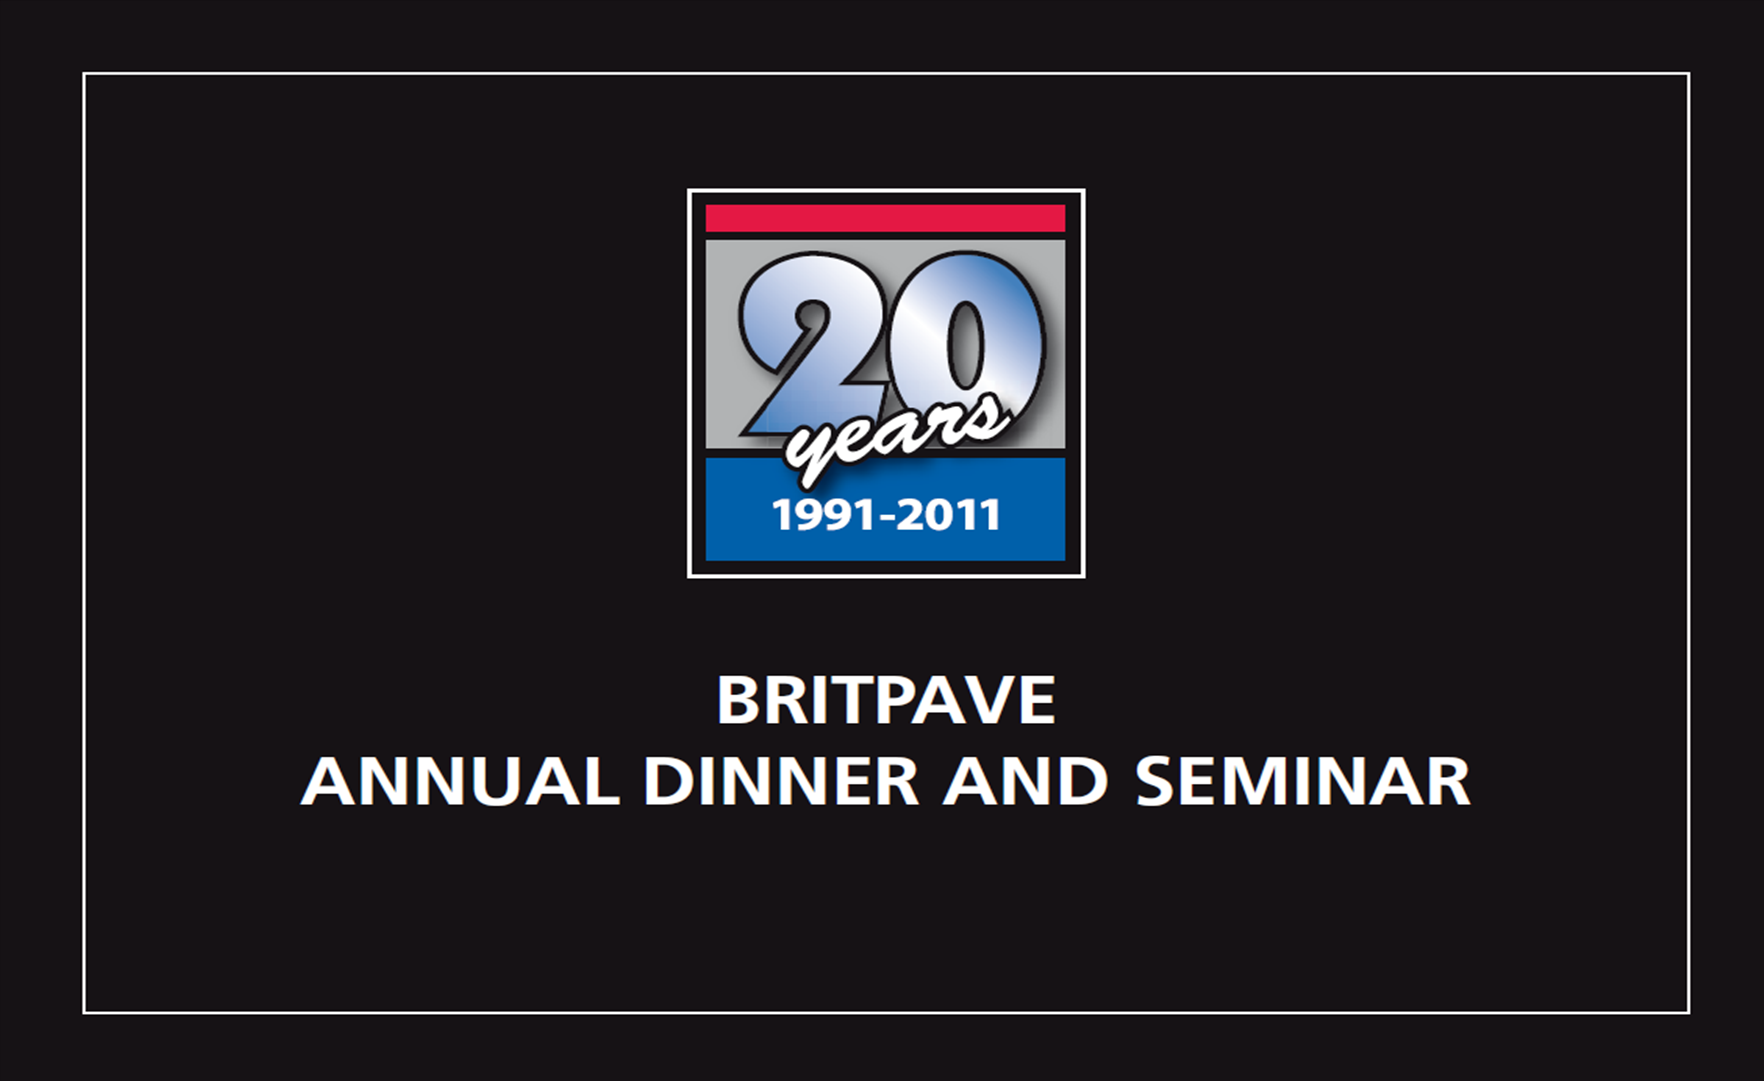 A&A in the 20th anniversary of Britpave